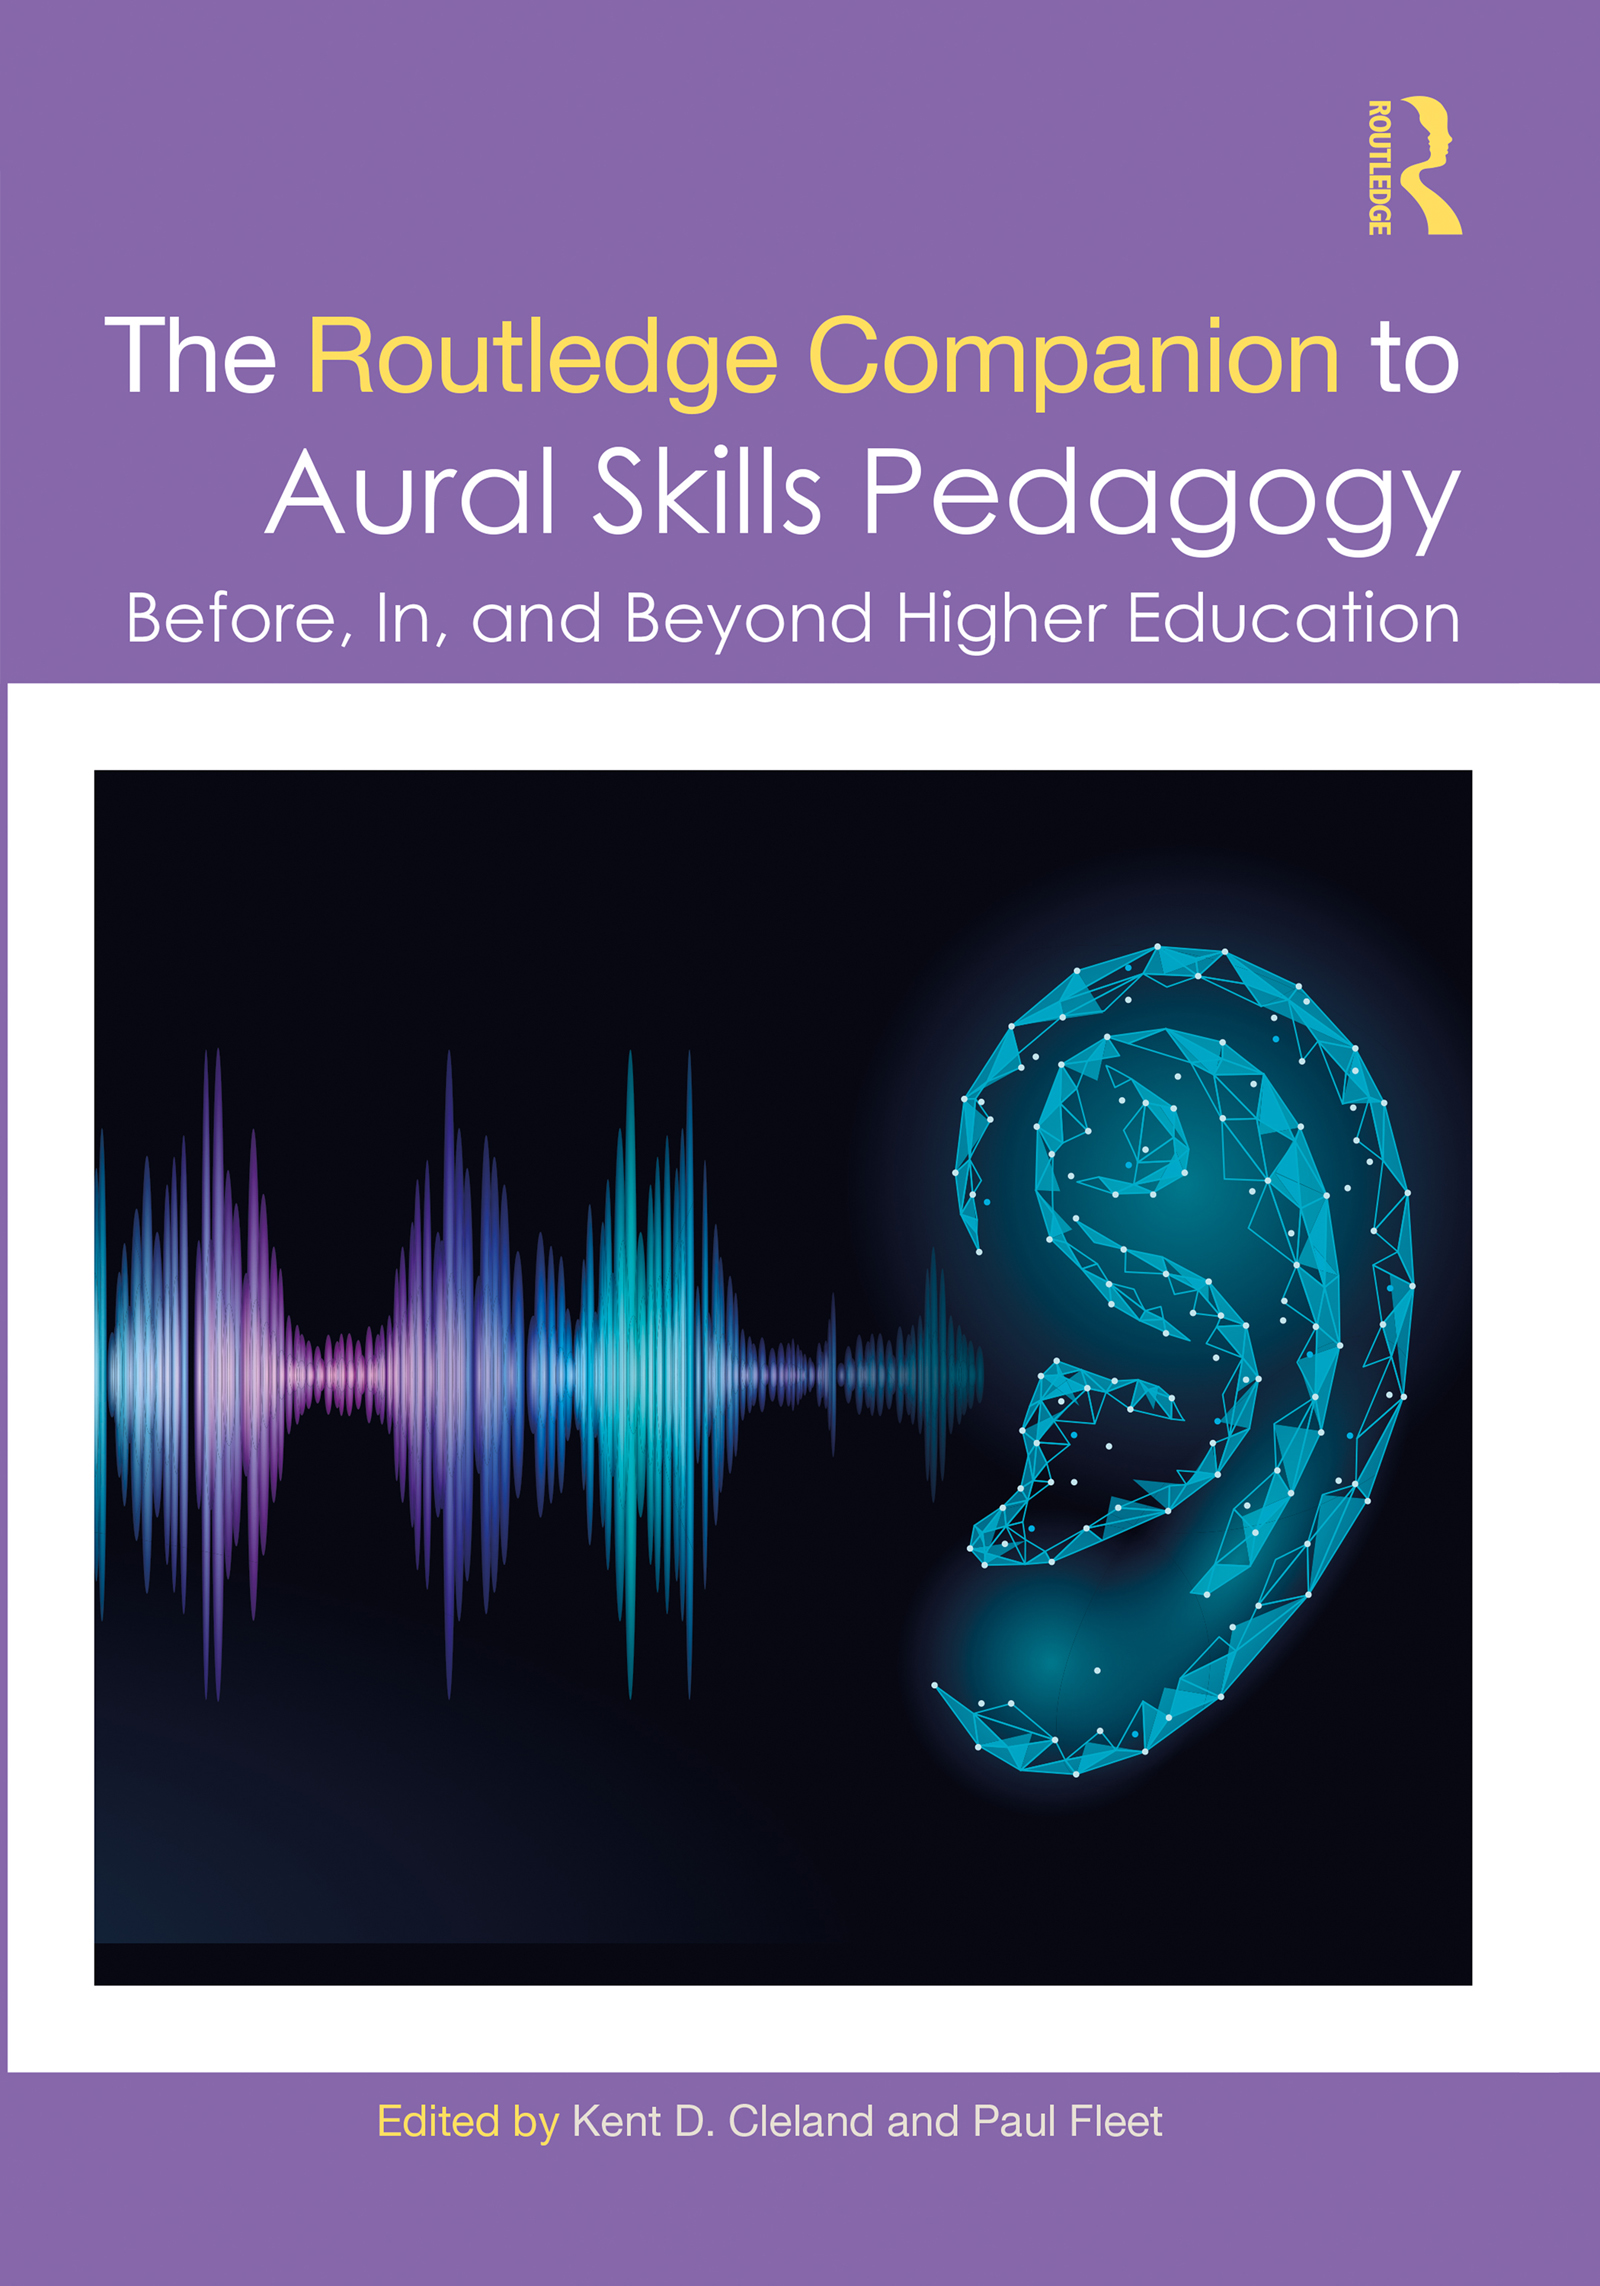 The Routledge Companion to Aural Skills Pedagogy